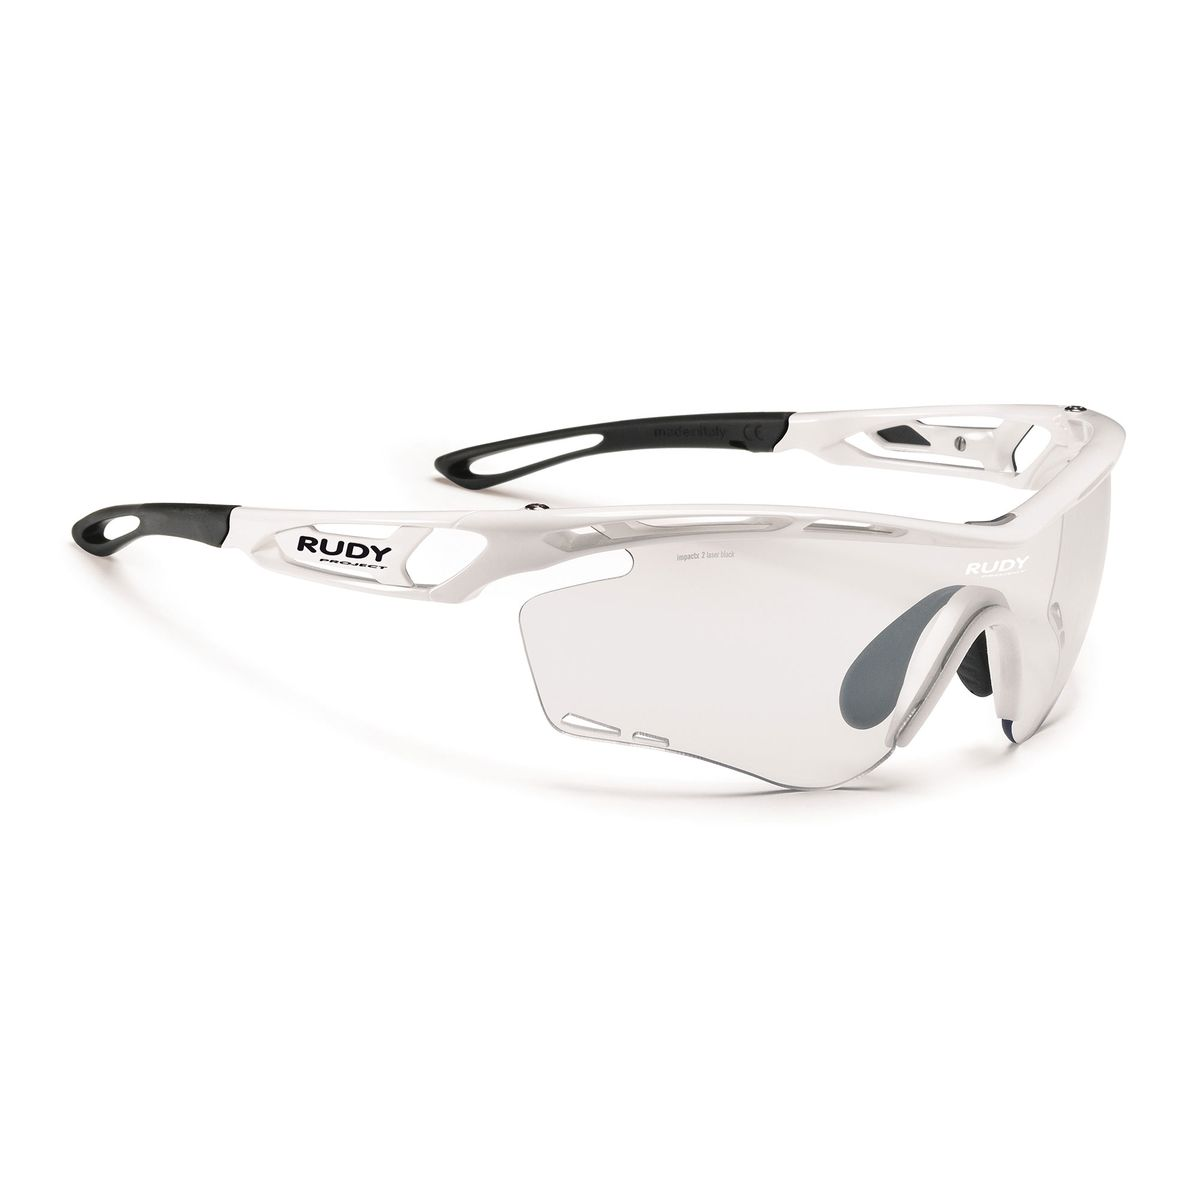 TRALYX sports glasses